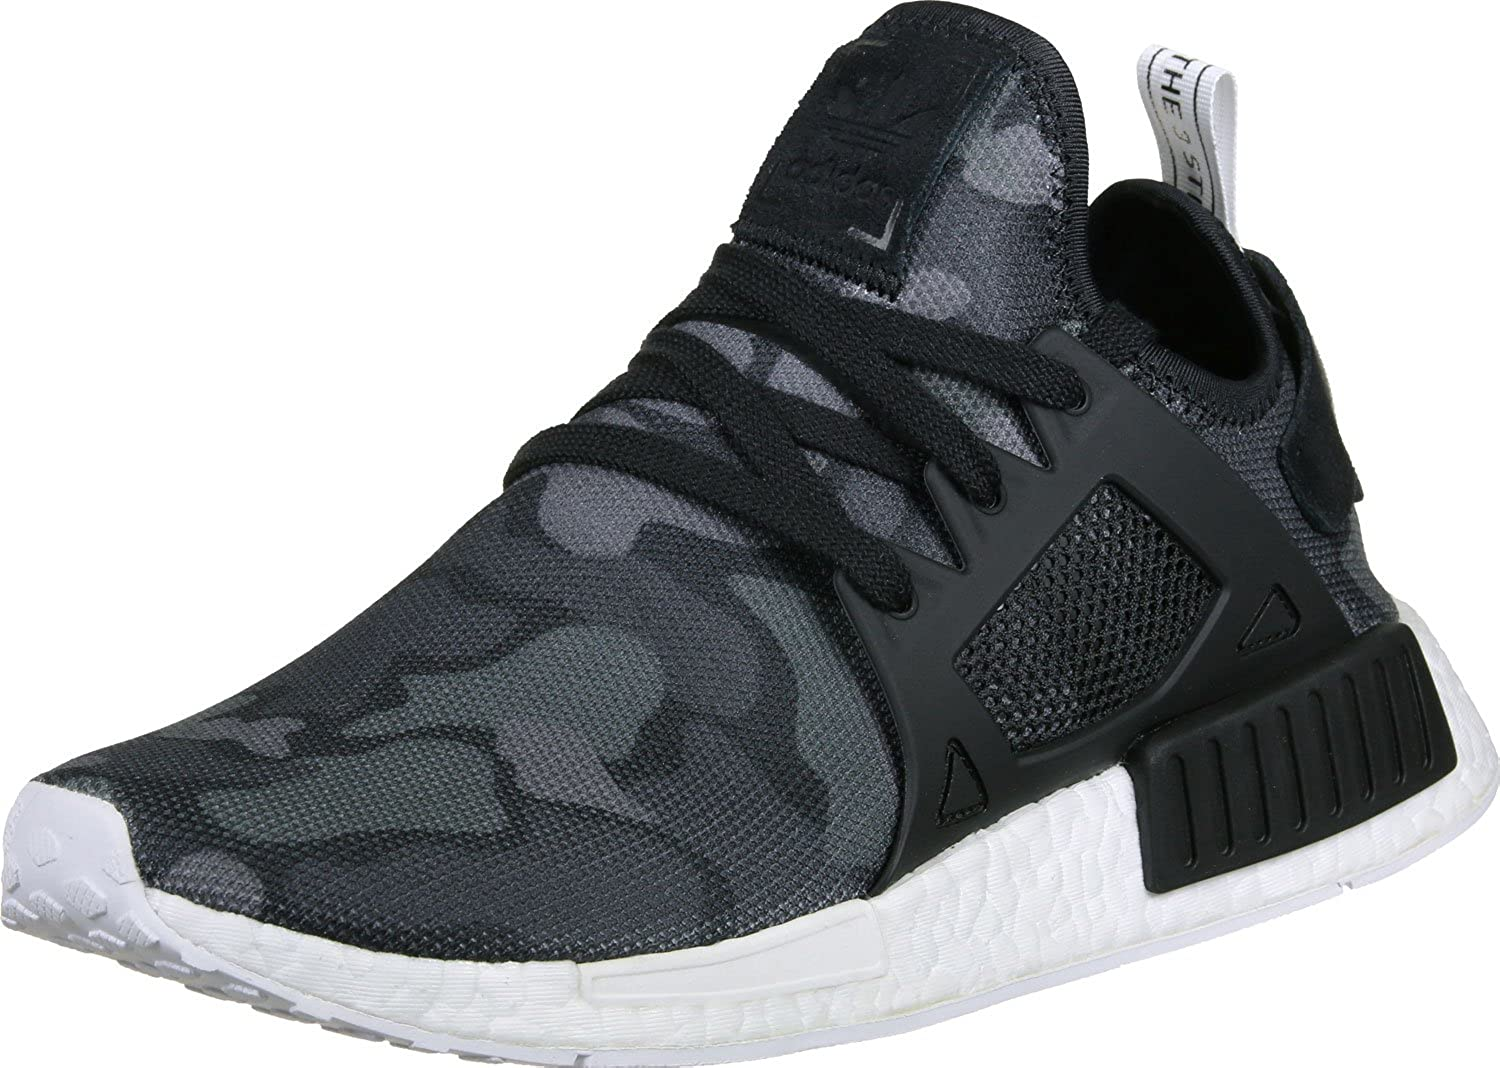 Adidas Originals Men's NMD_xr1 Pk Running shoes